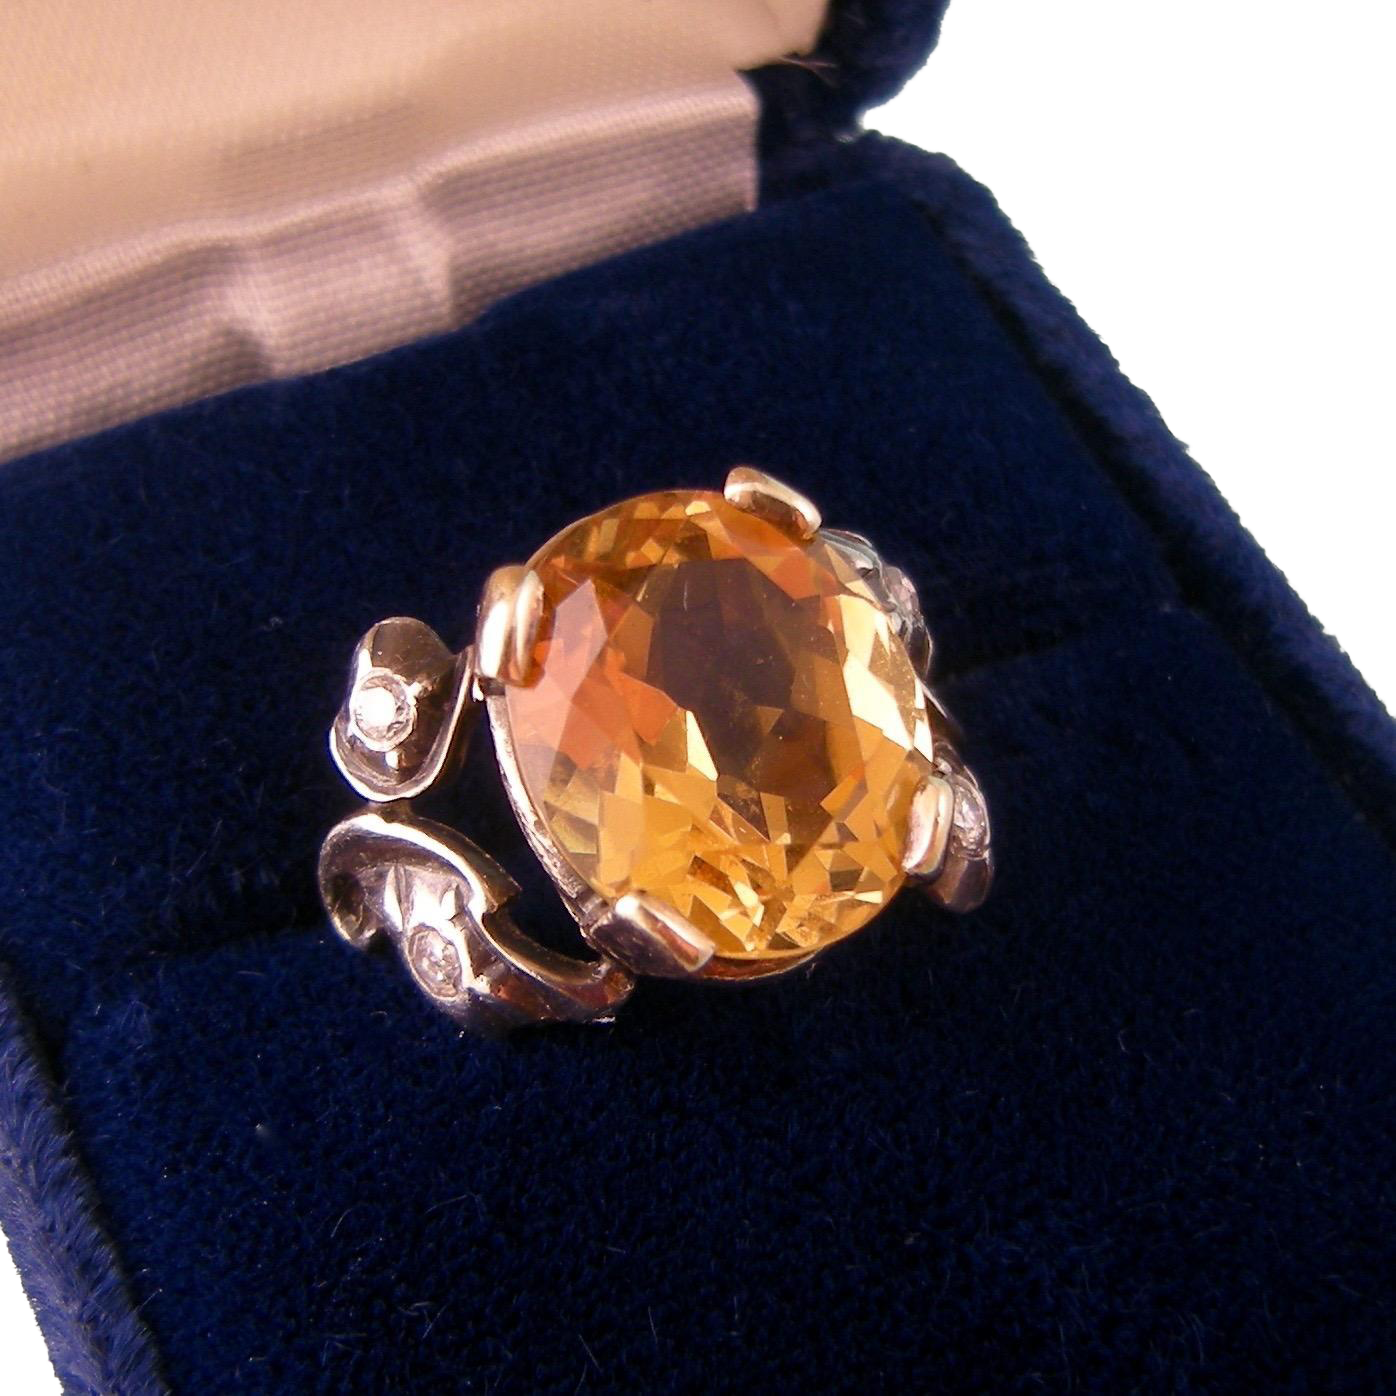 Antique Art Nouveau Ring with Large, Brilliant Citrine and Four Diamonds in Sterling Silver and 12K Gold